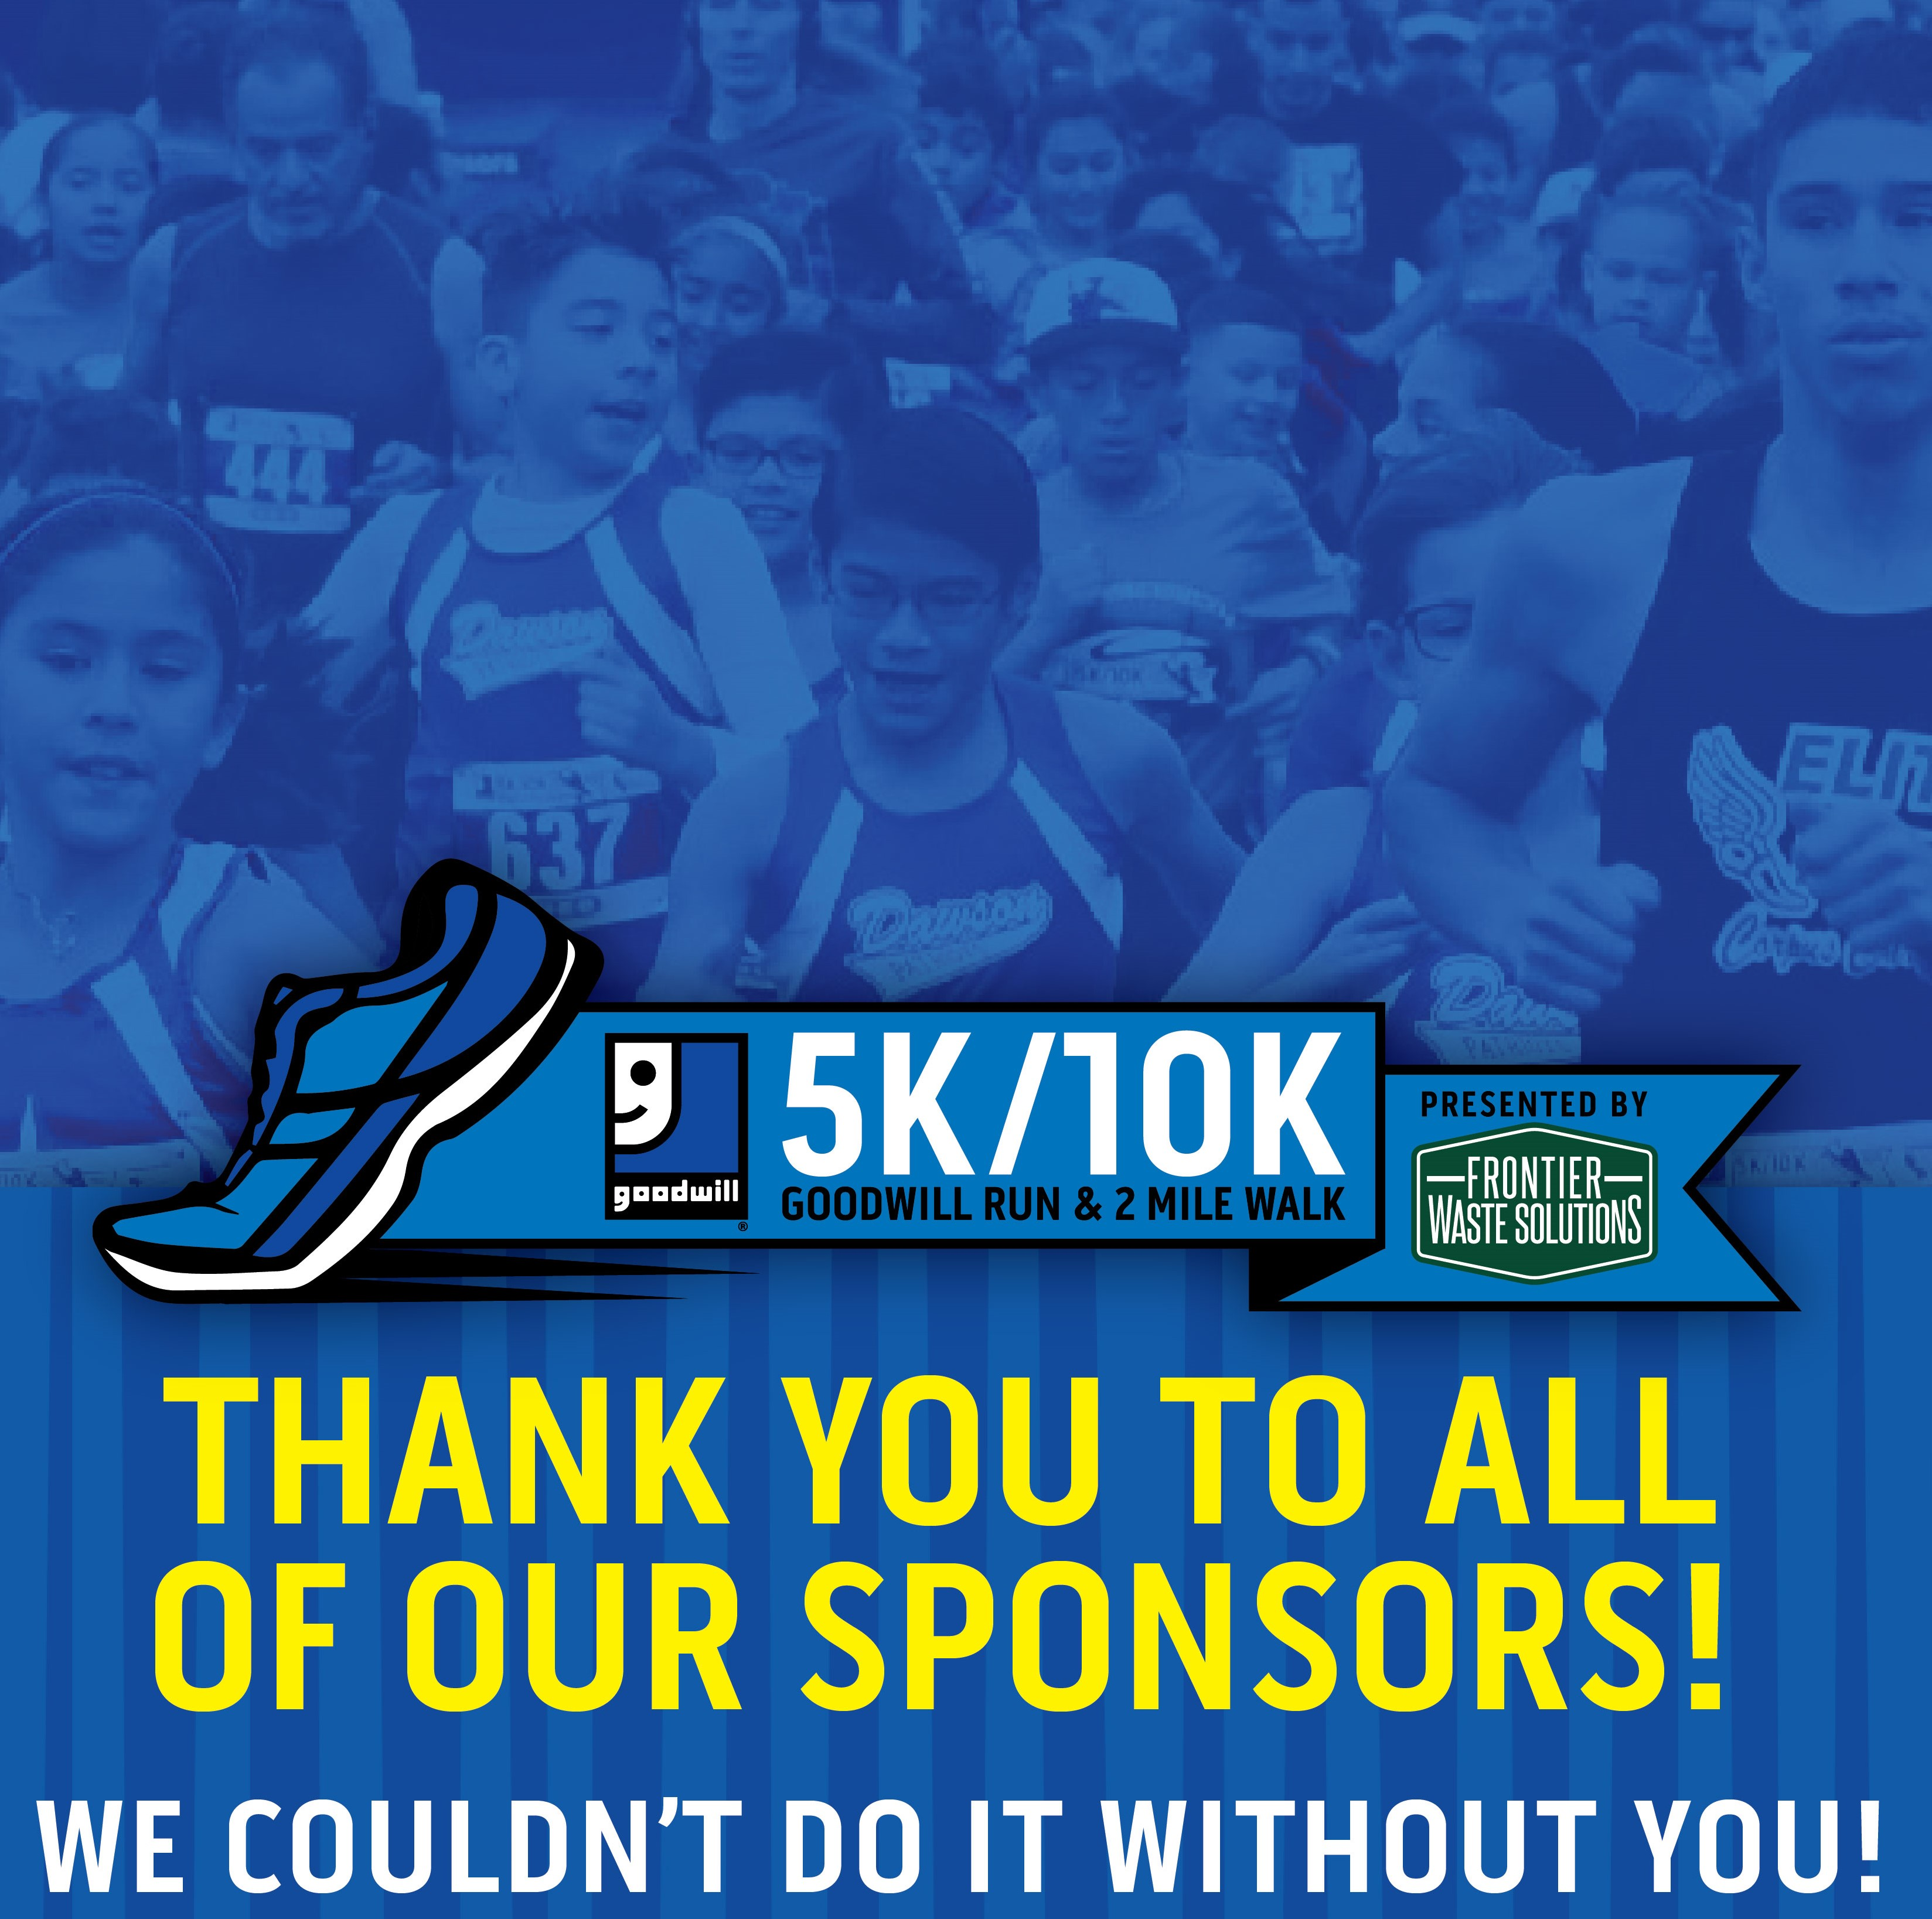 Thank you to all of our sponsors 2019 5k/10k Goodwill South Texas